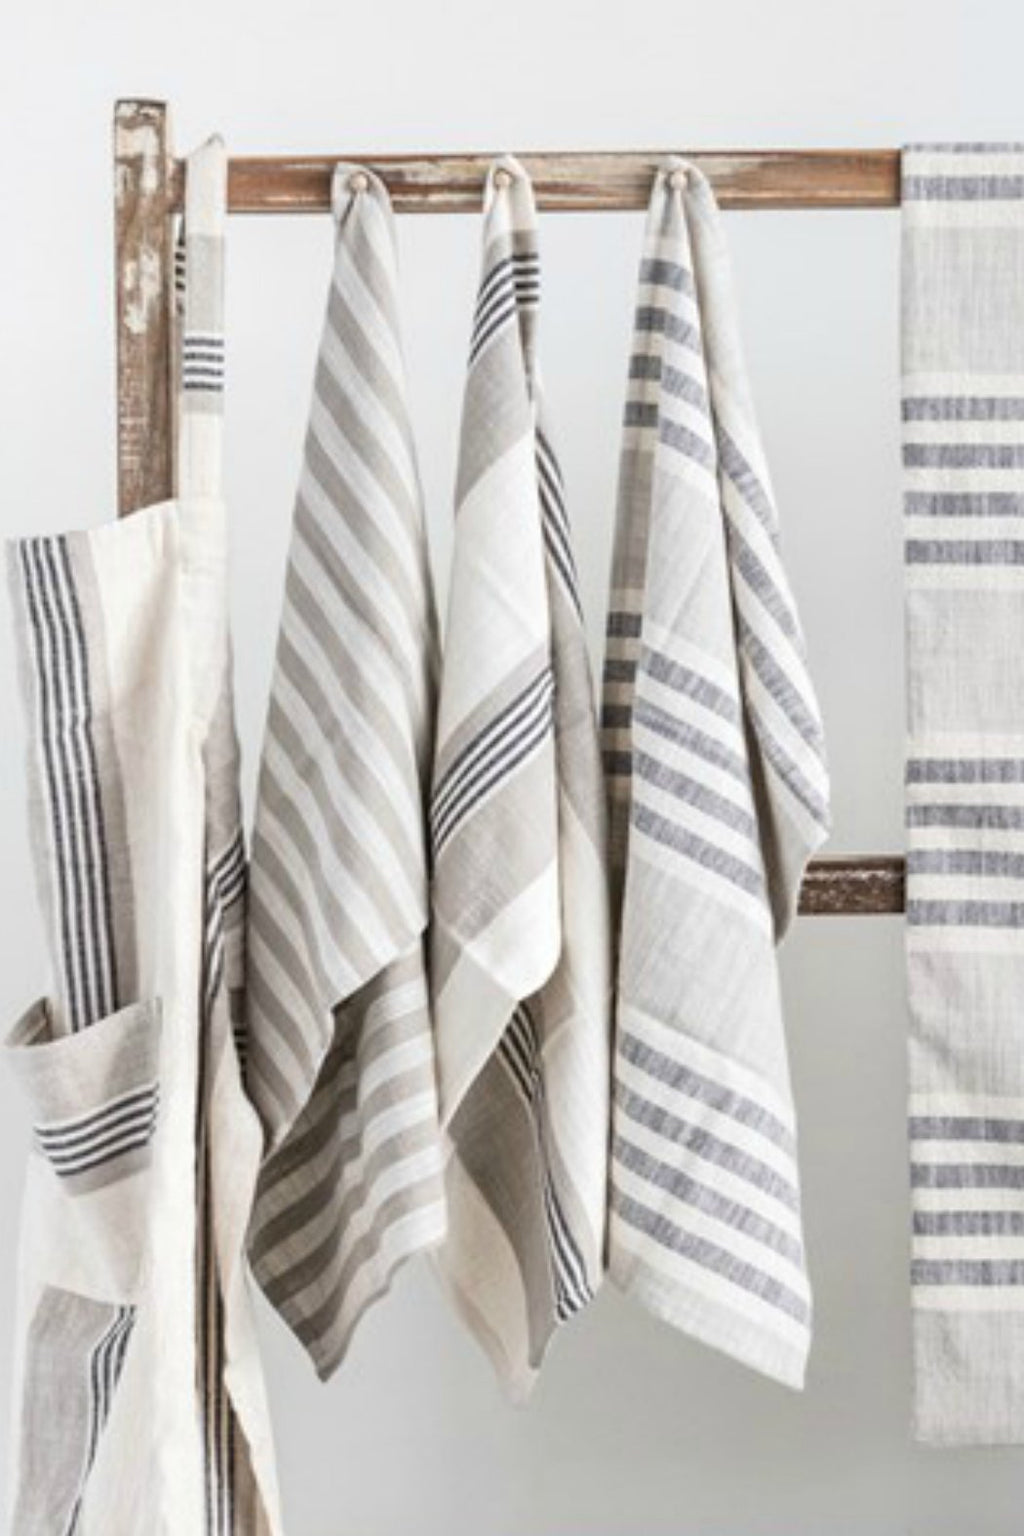 Creative Co-op Woven Cotton Striped Tea Towels